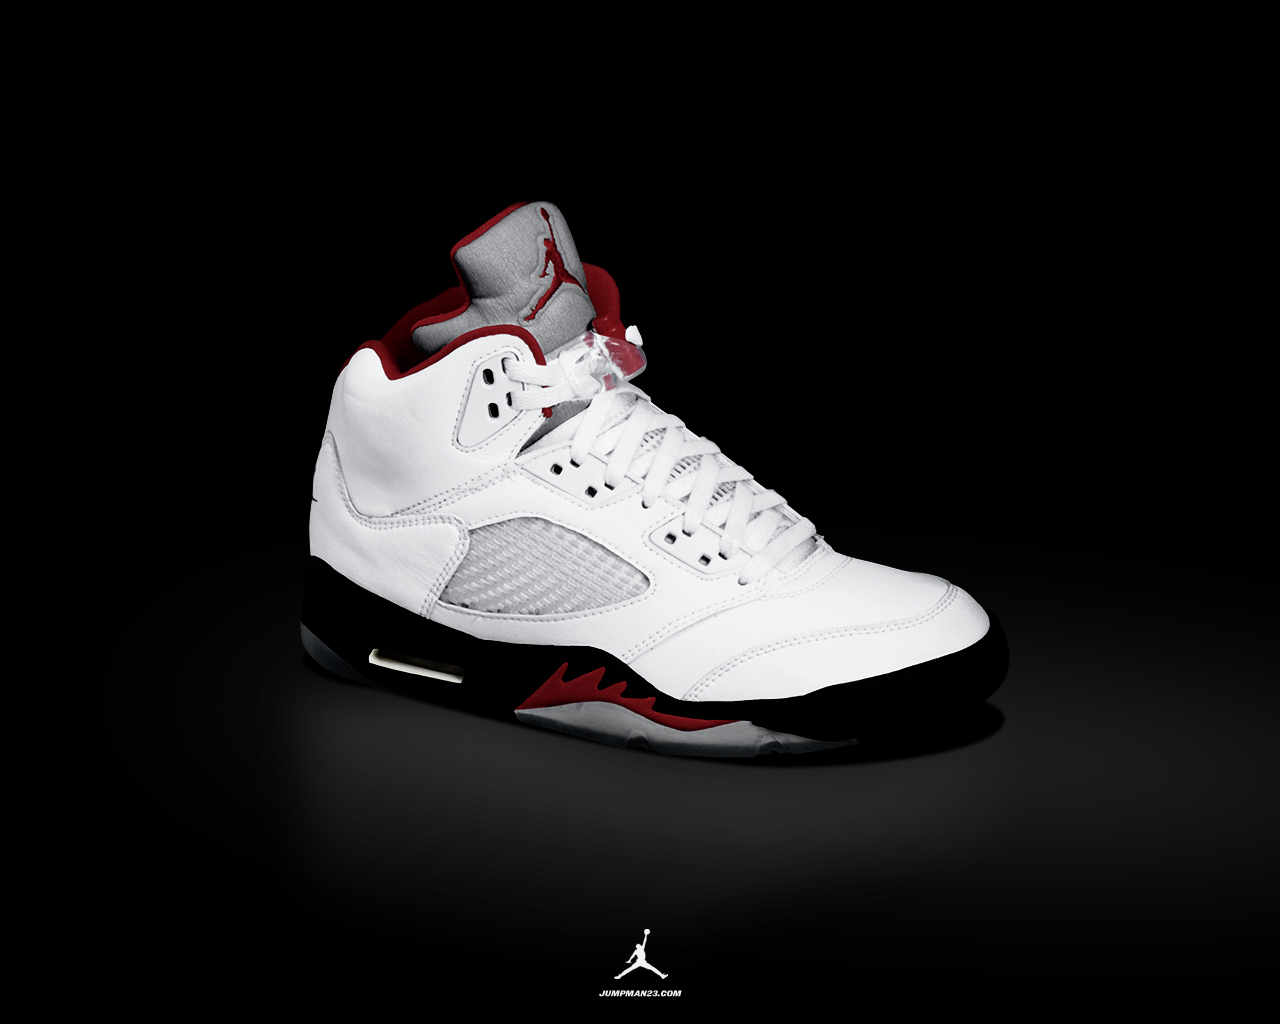 Awesome Jordan Shoes Wallpaper